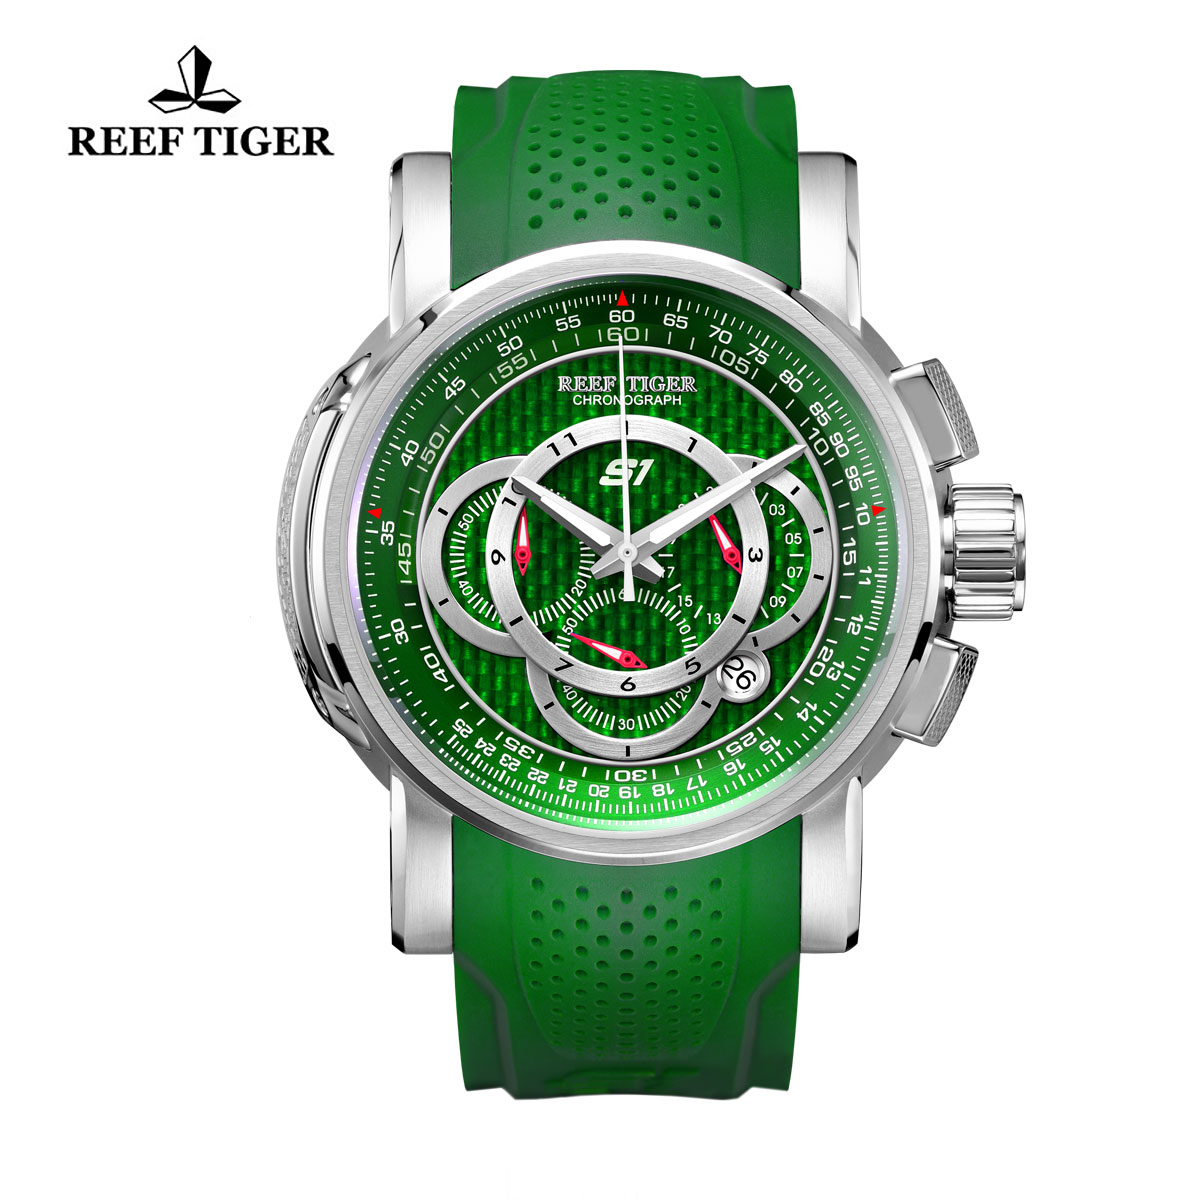 Reef Tiger Top Speed Sport Watches Chronograph Steel Case Green Dial Rubber Strap Watches RGA3063-YNN